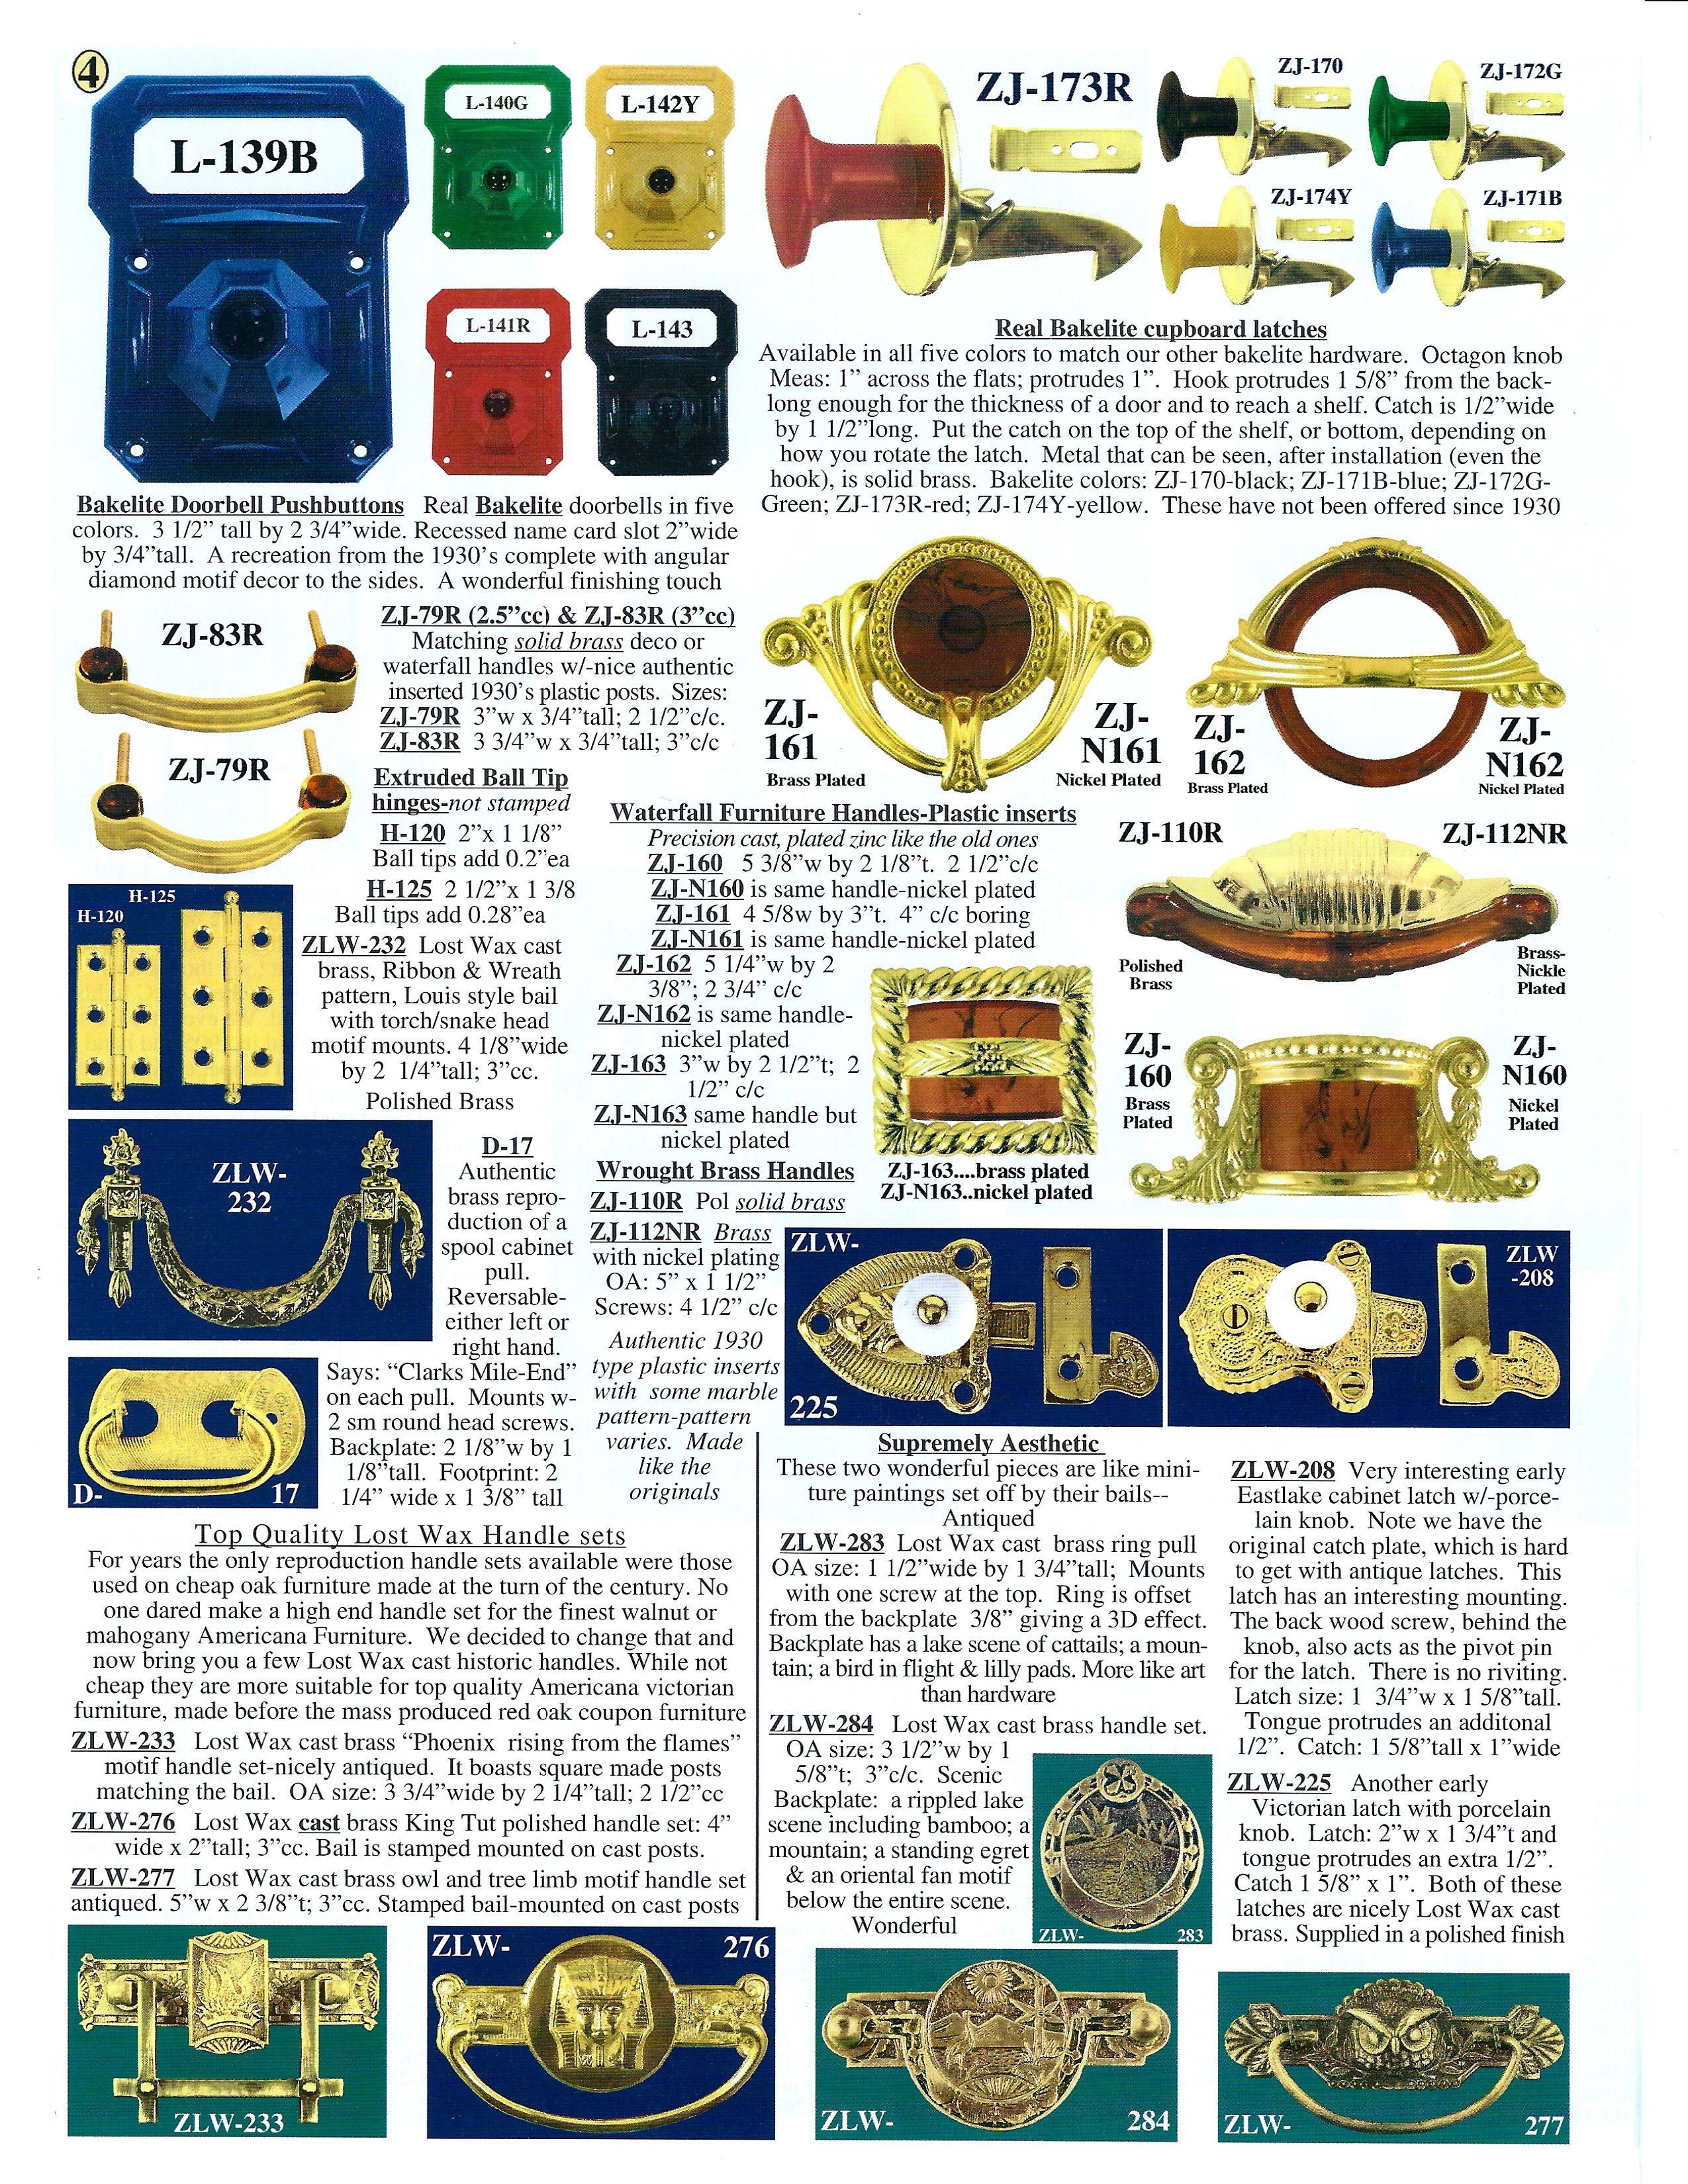 Catalog page 48